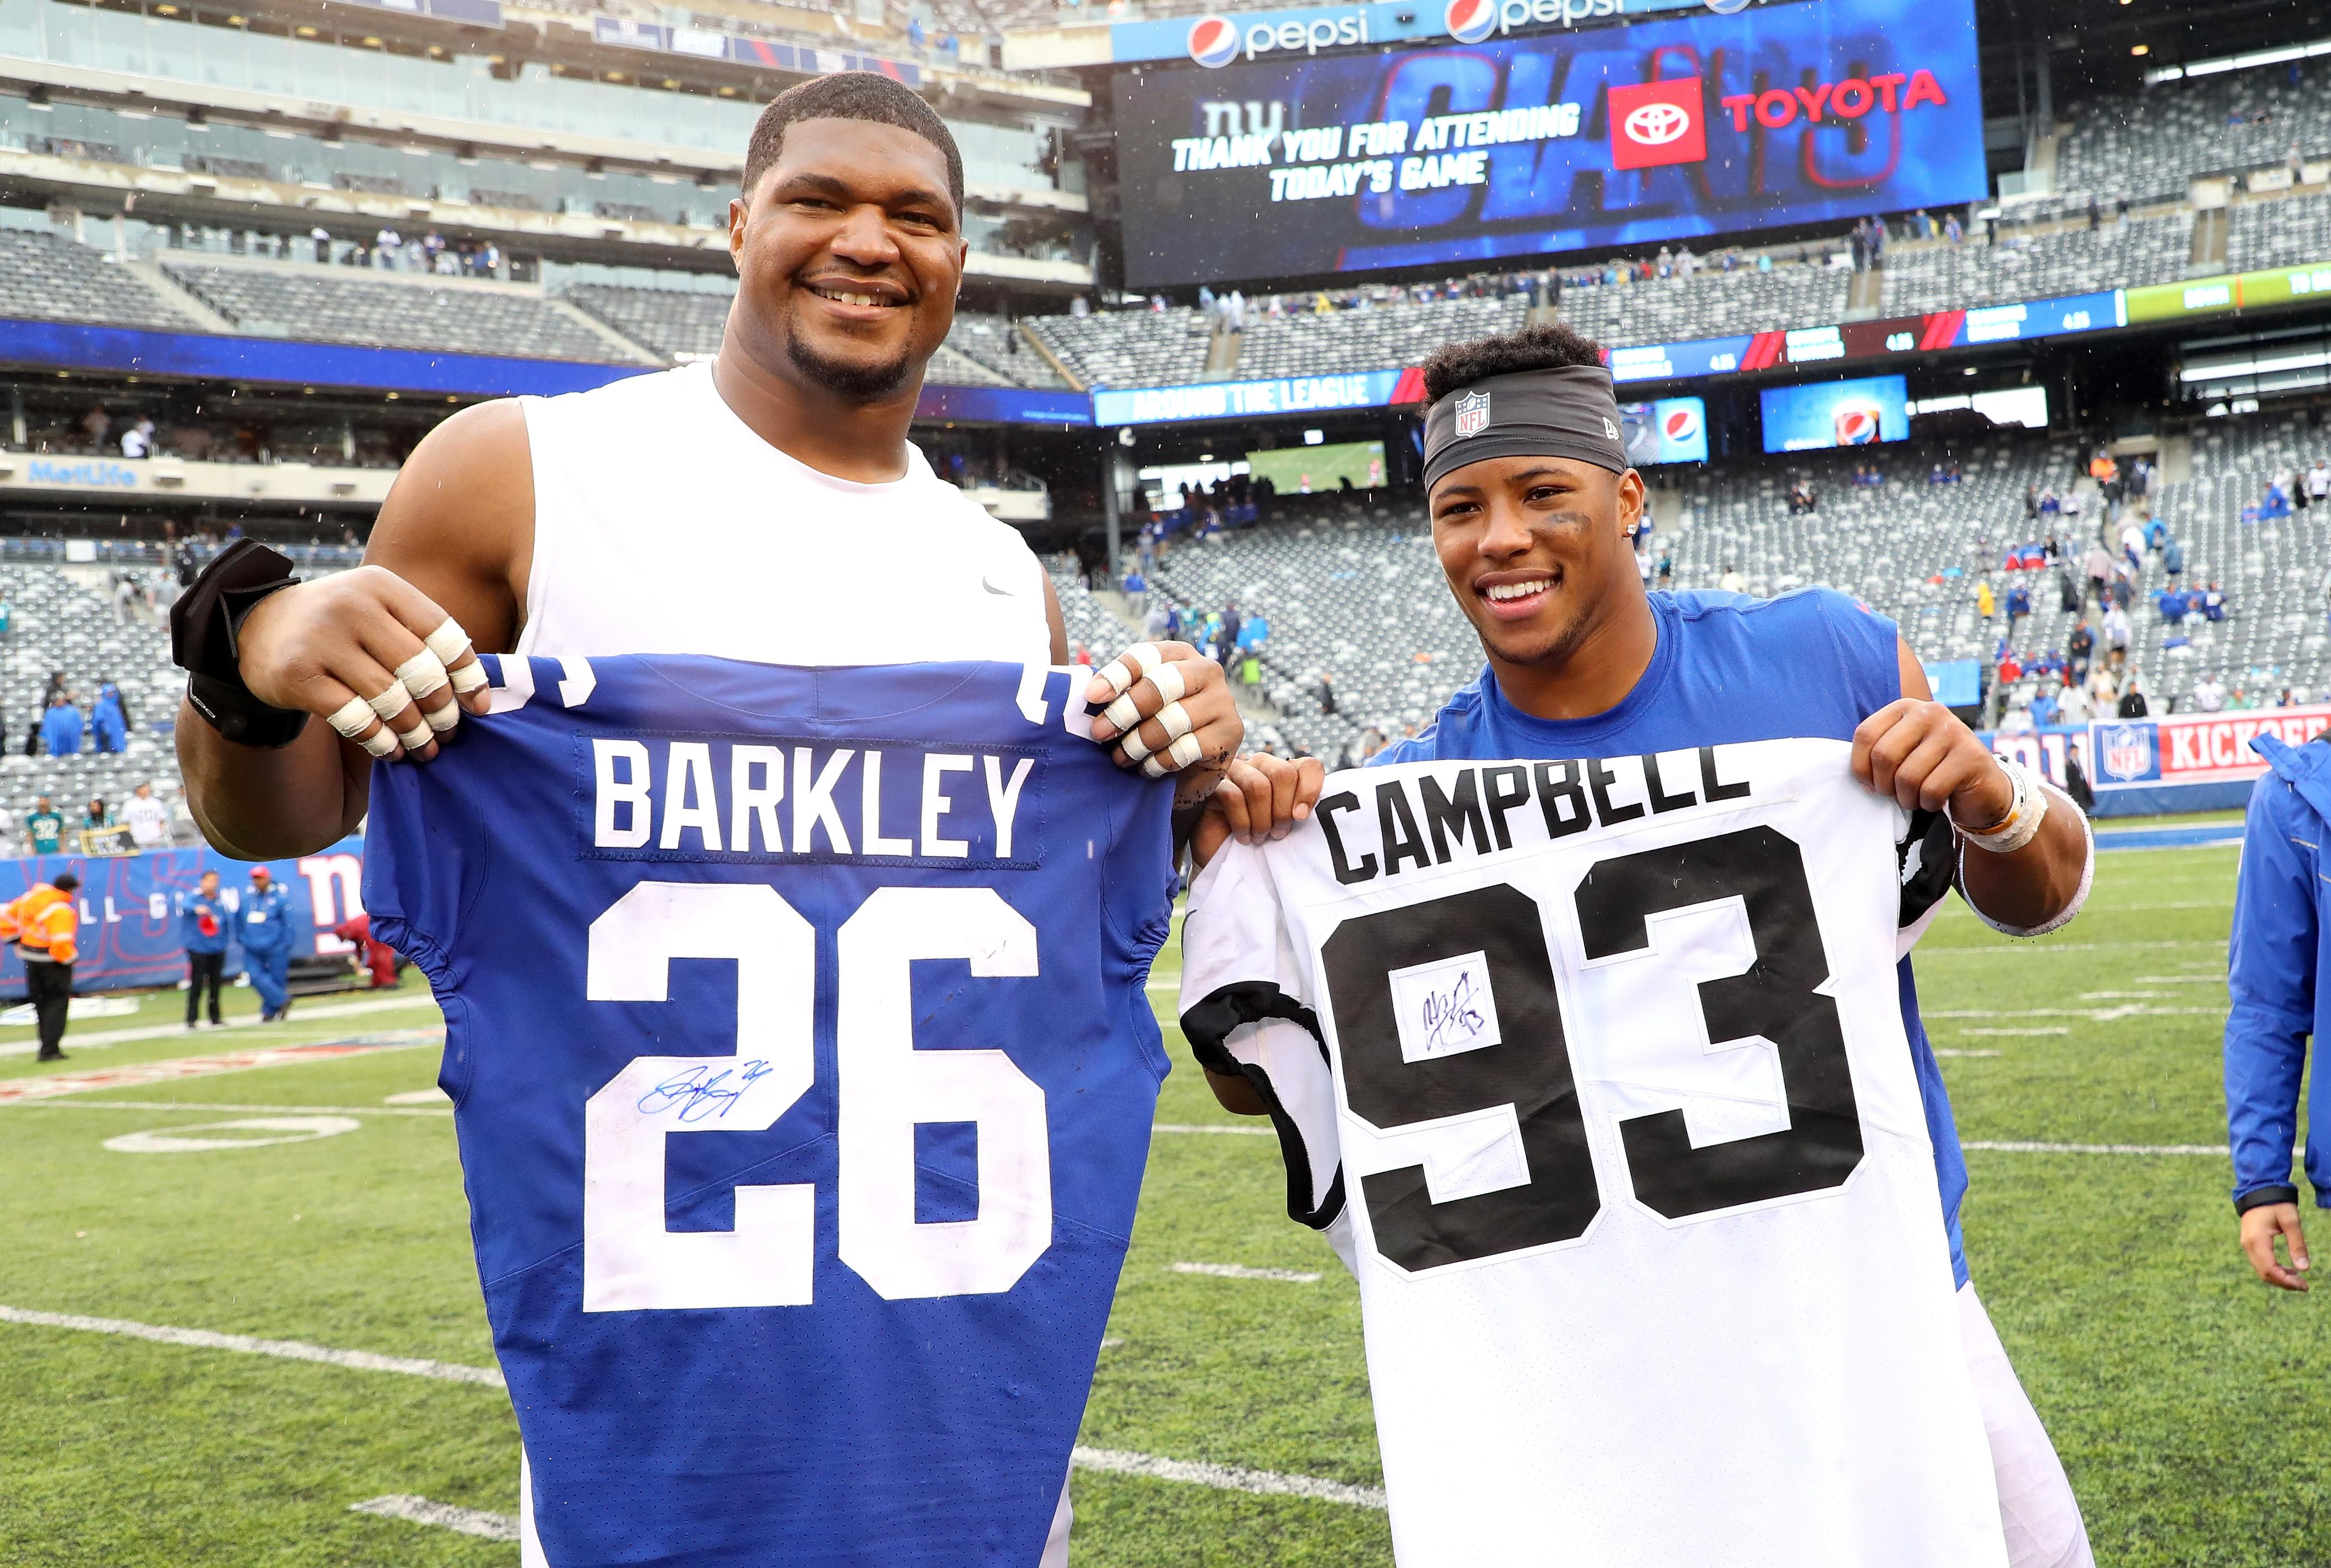 Calais Campbell: I plan to ask Tom Brady for his jersey on Sunday